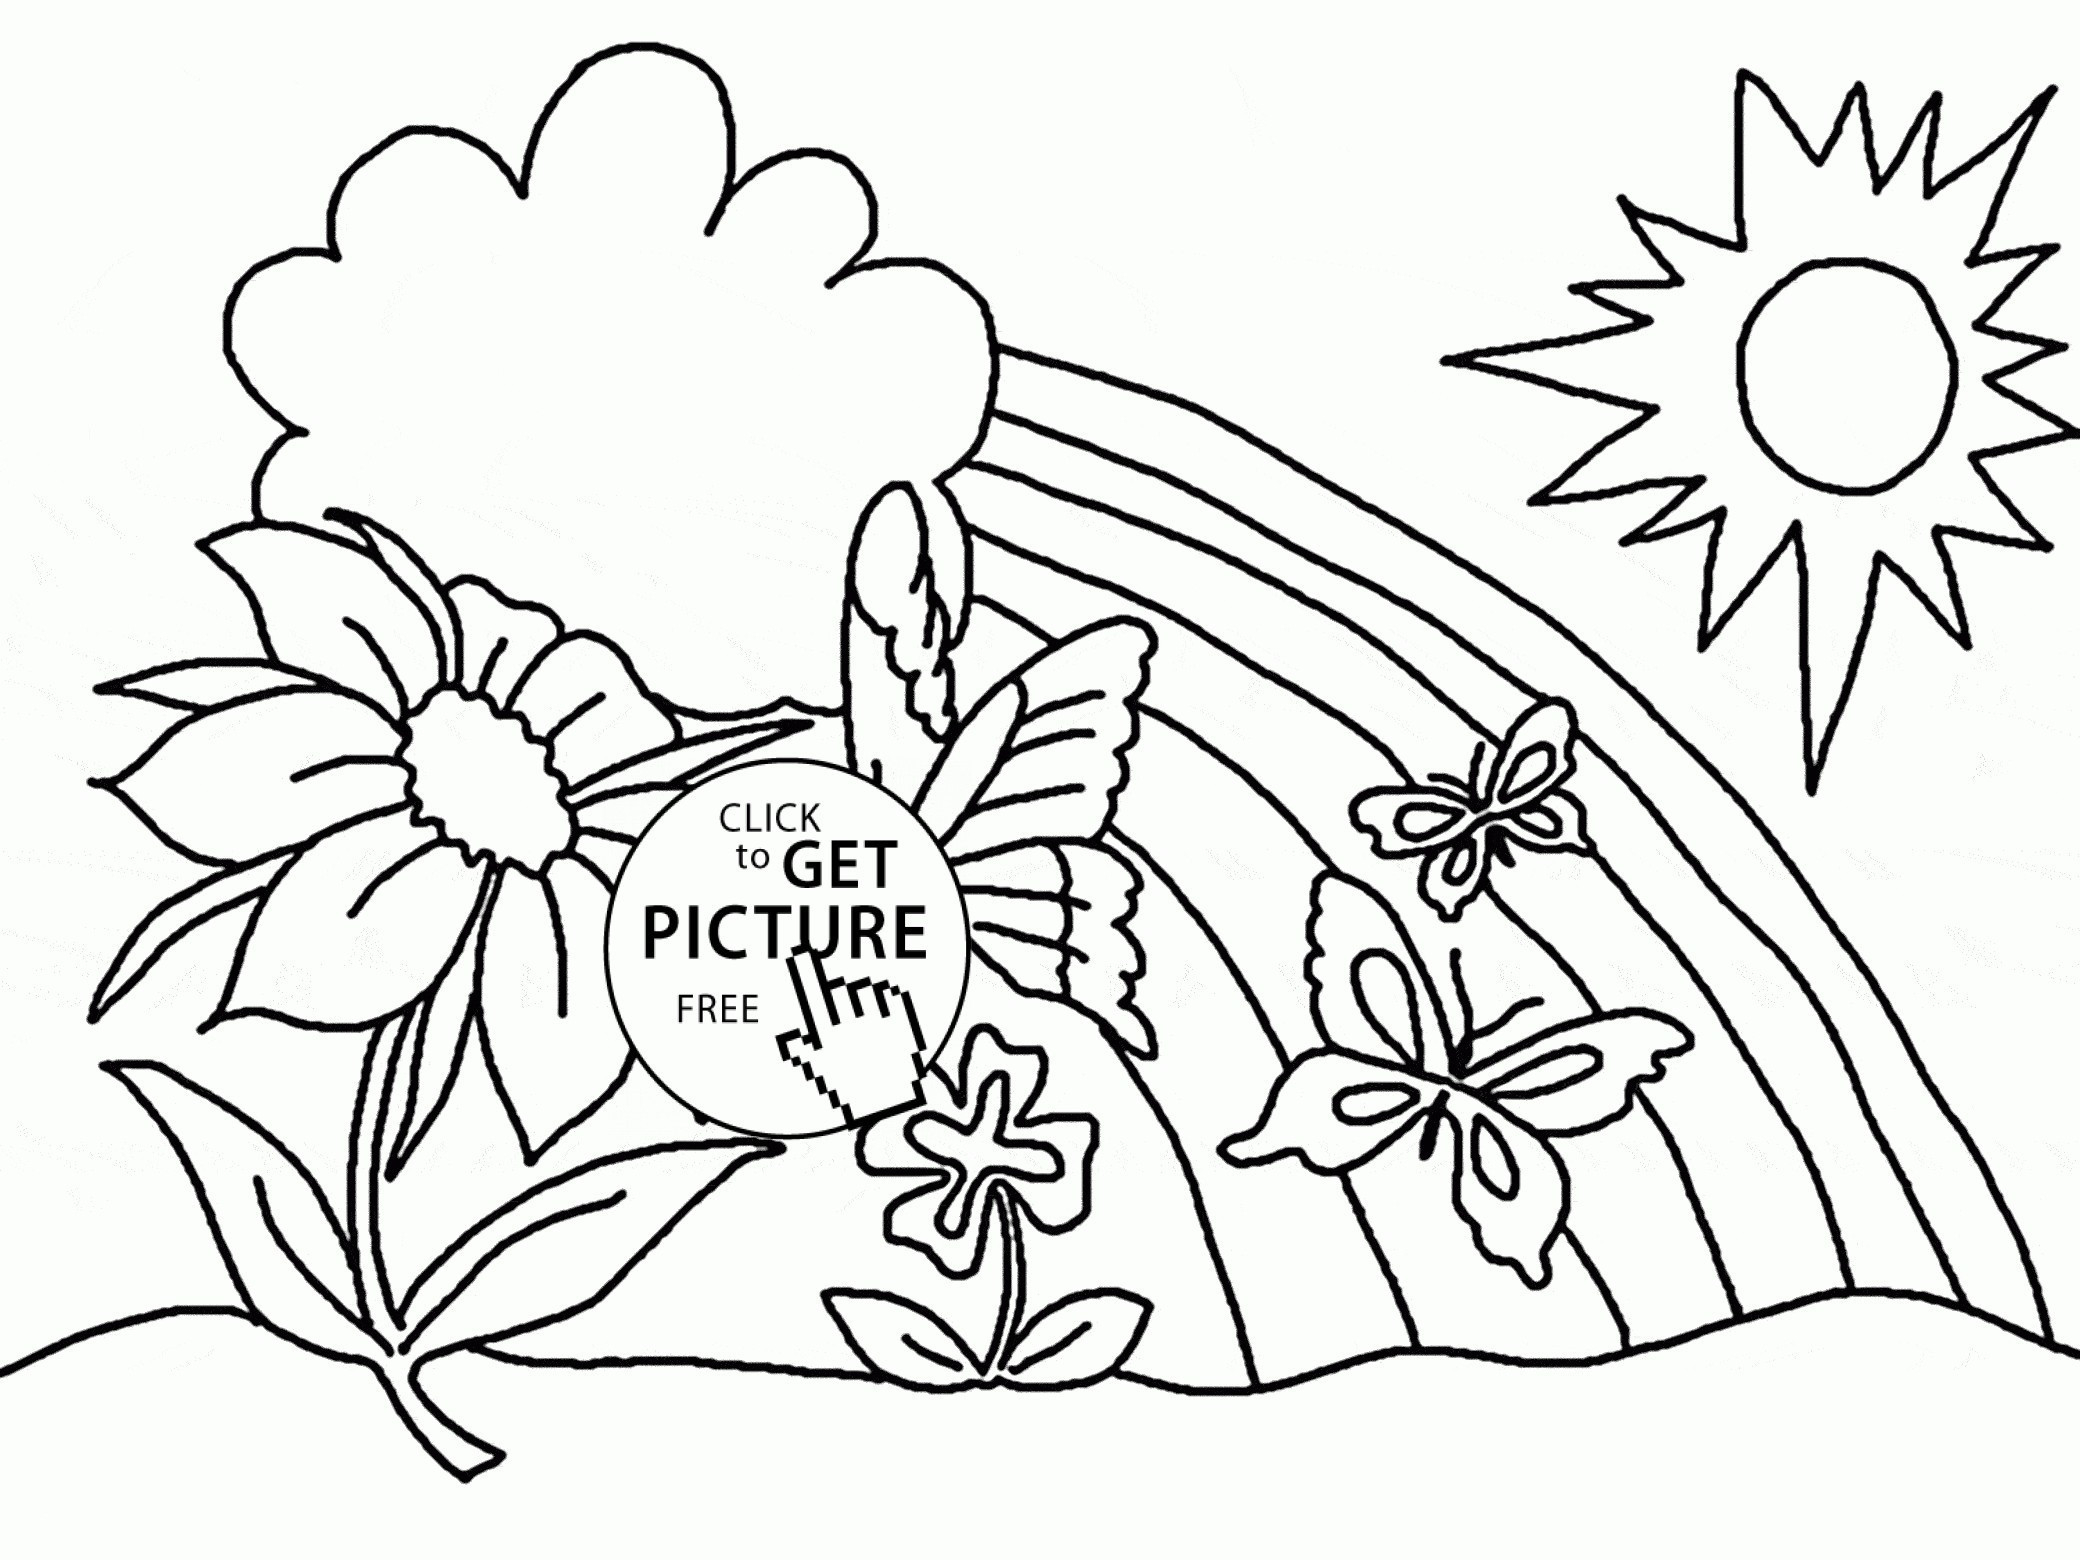 daffodils coloring pages Download-Spring Printable Coloring Pages Spring Coloring Pages Spring Coloring Pages Best Printable Cds 0d 12-d